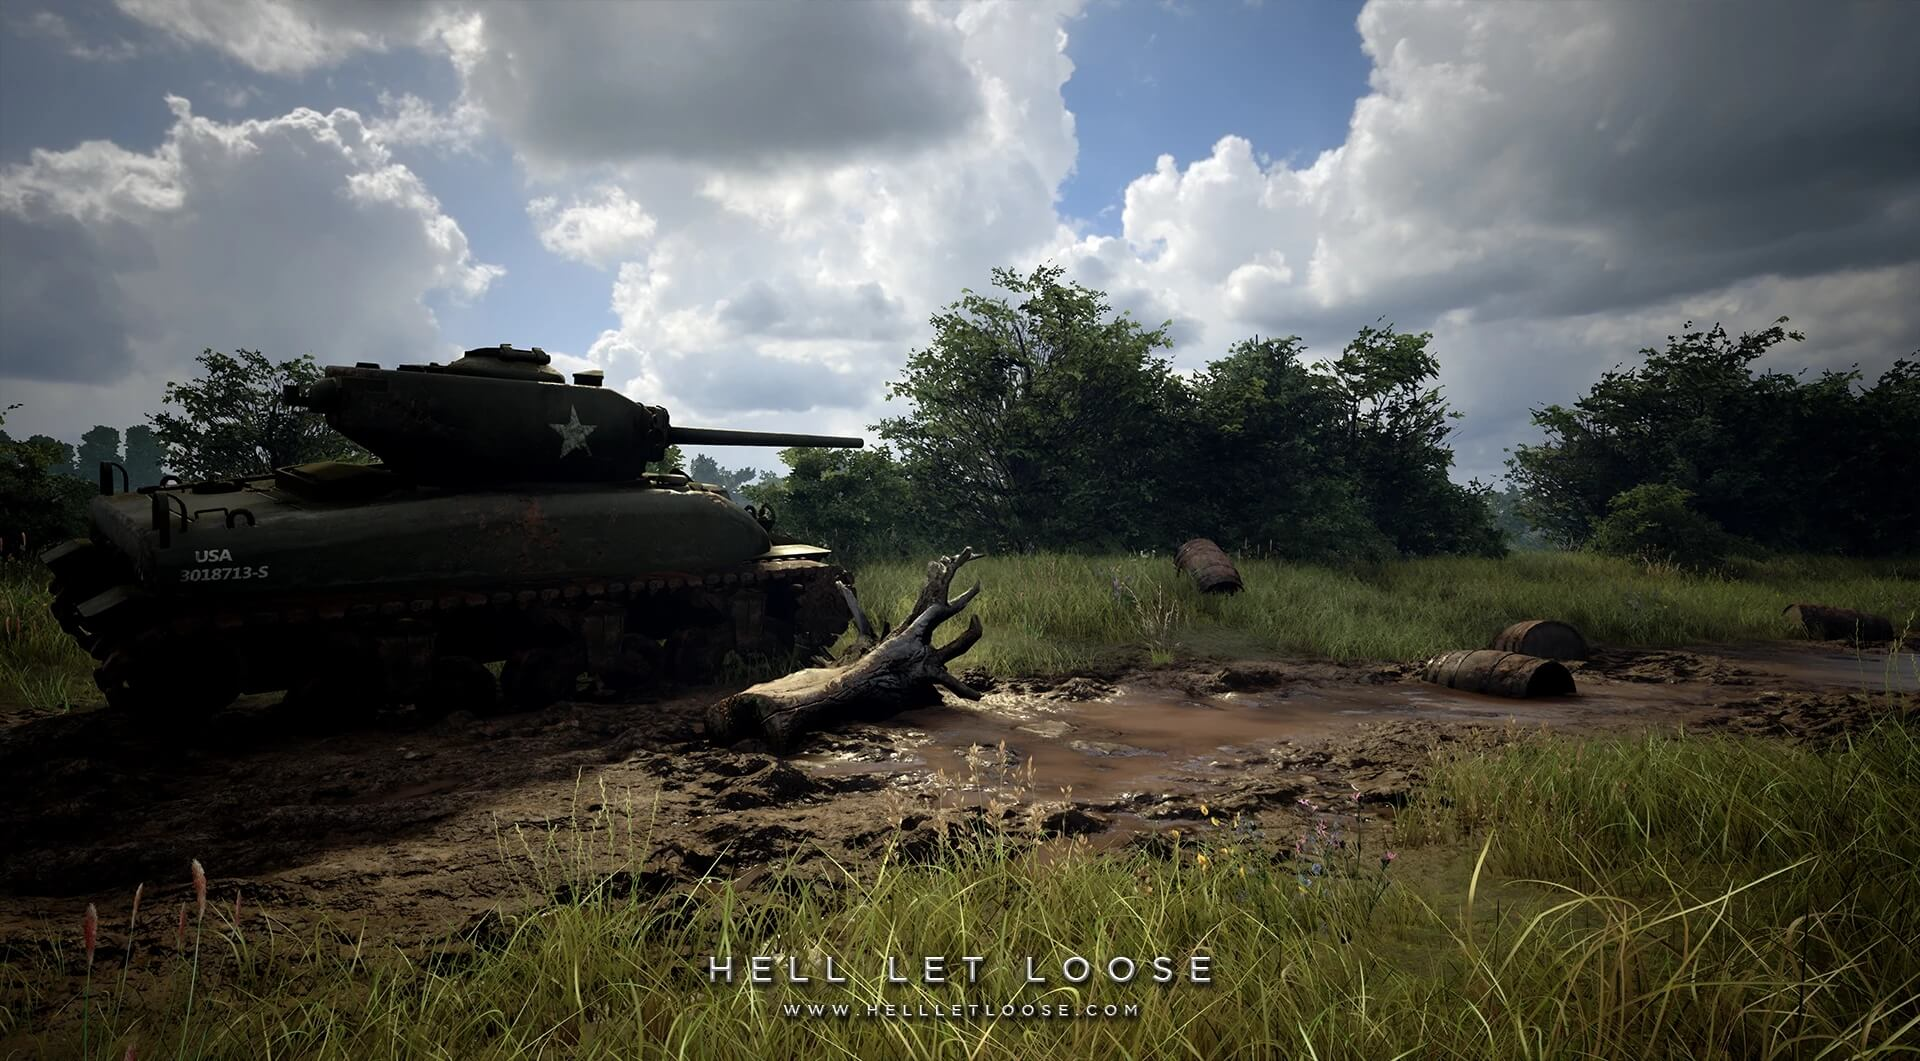 An American tank in Hell Let Loose